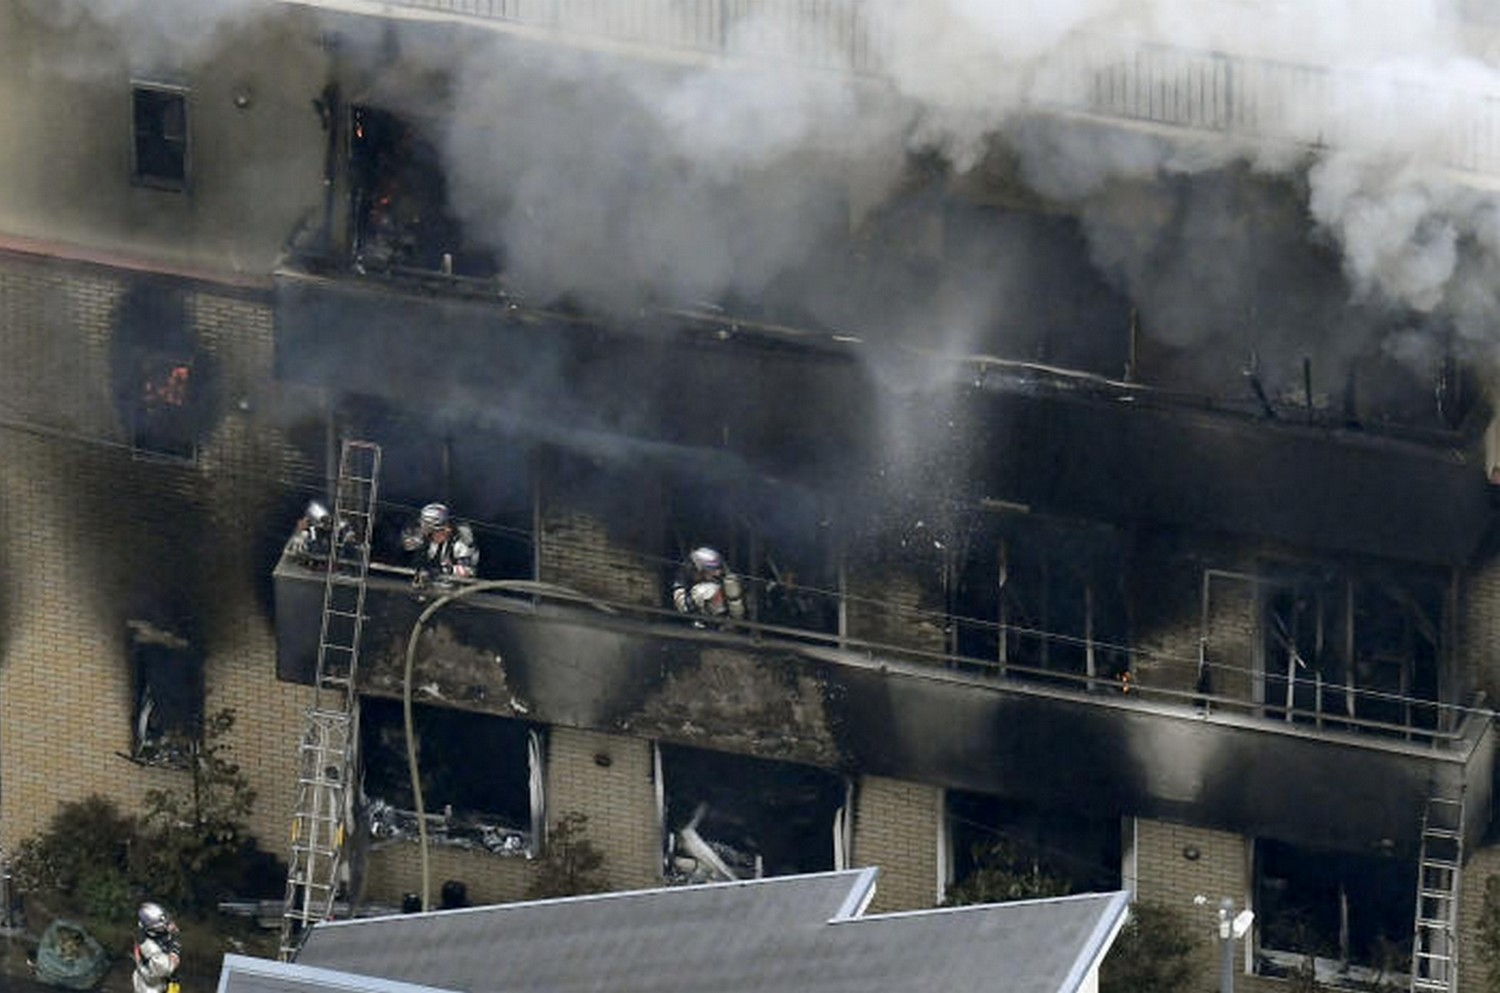 NHK: At Least 10 People Believed Dead in Kyoto Animation Fire